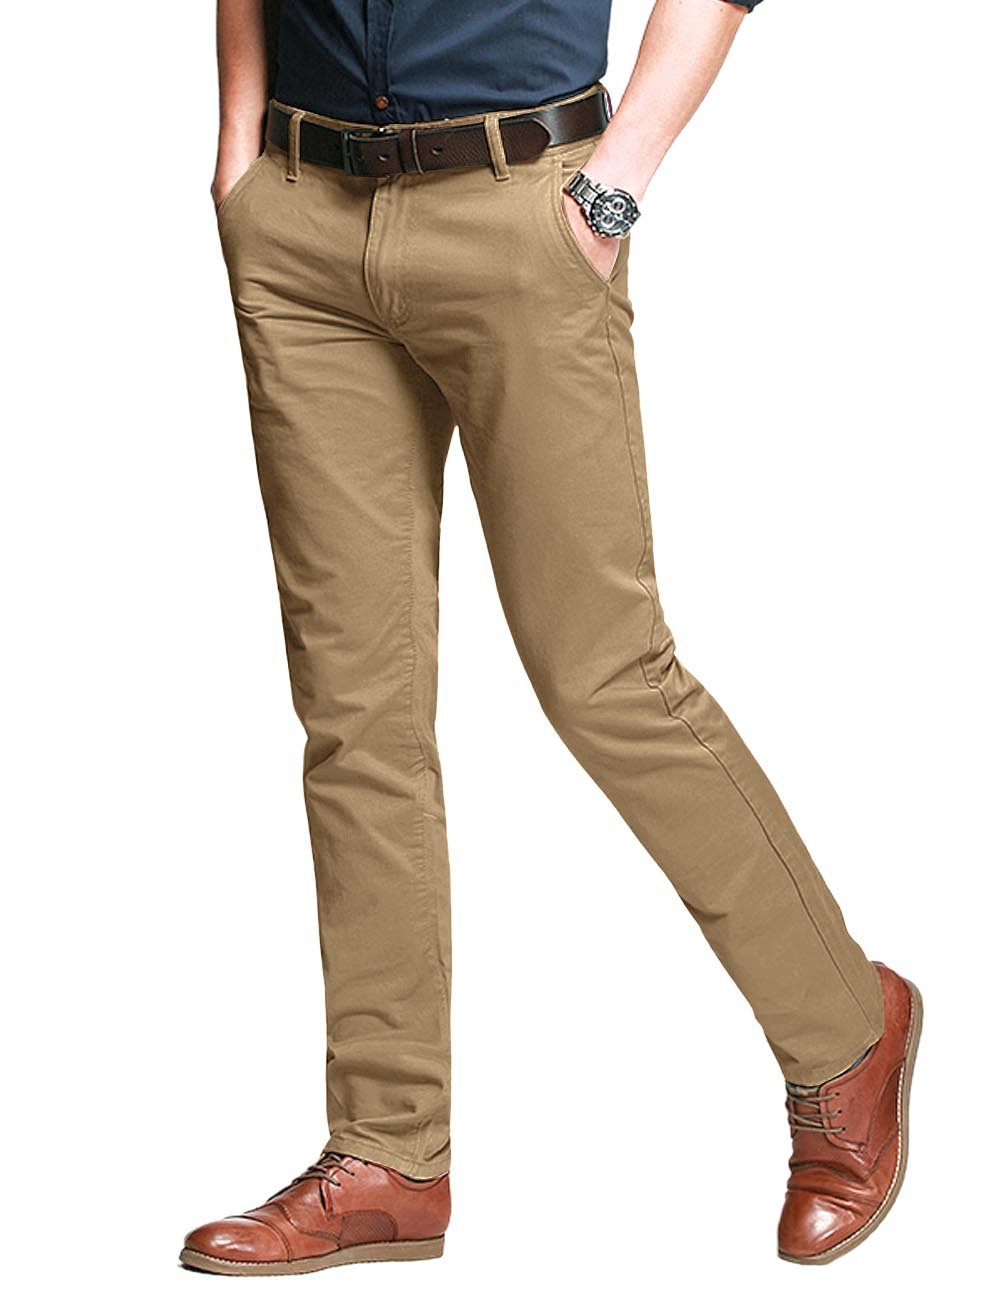 Match Men's Fit Tapered Stretchy Casual Pants (32W x 31L, 8106 Khaki) by Match